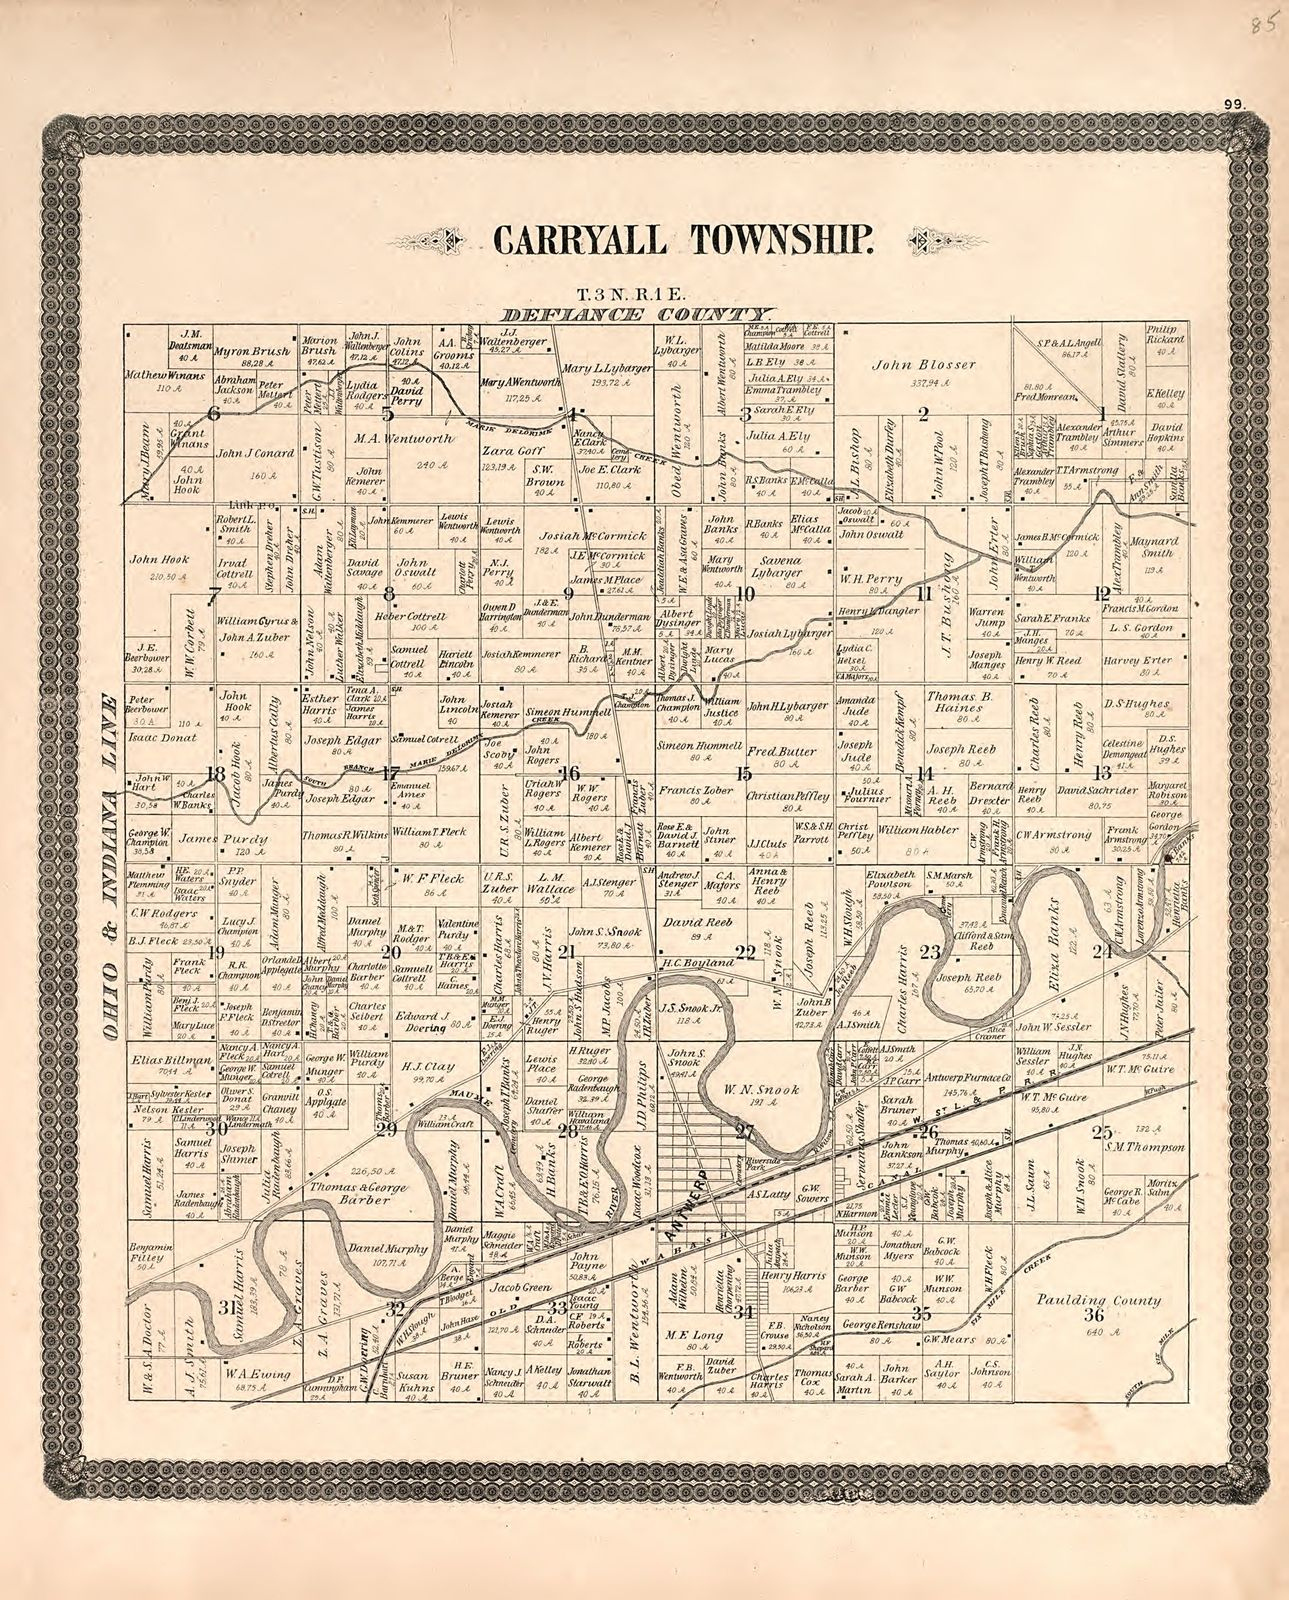 Historical Atlas Of Paulding County Ohio Containing Maps Of